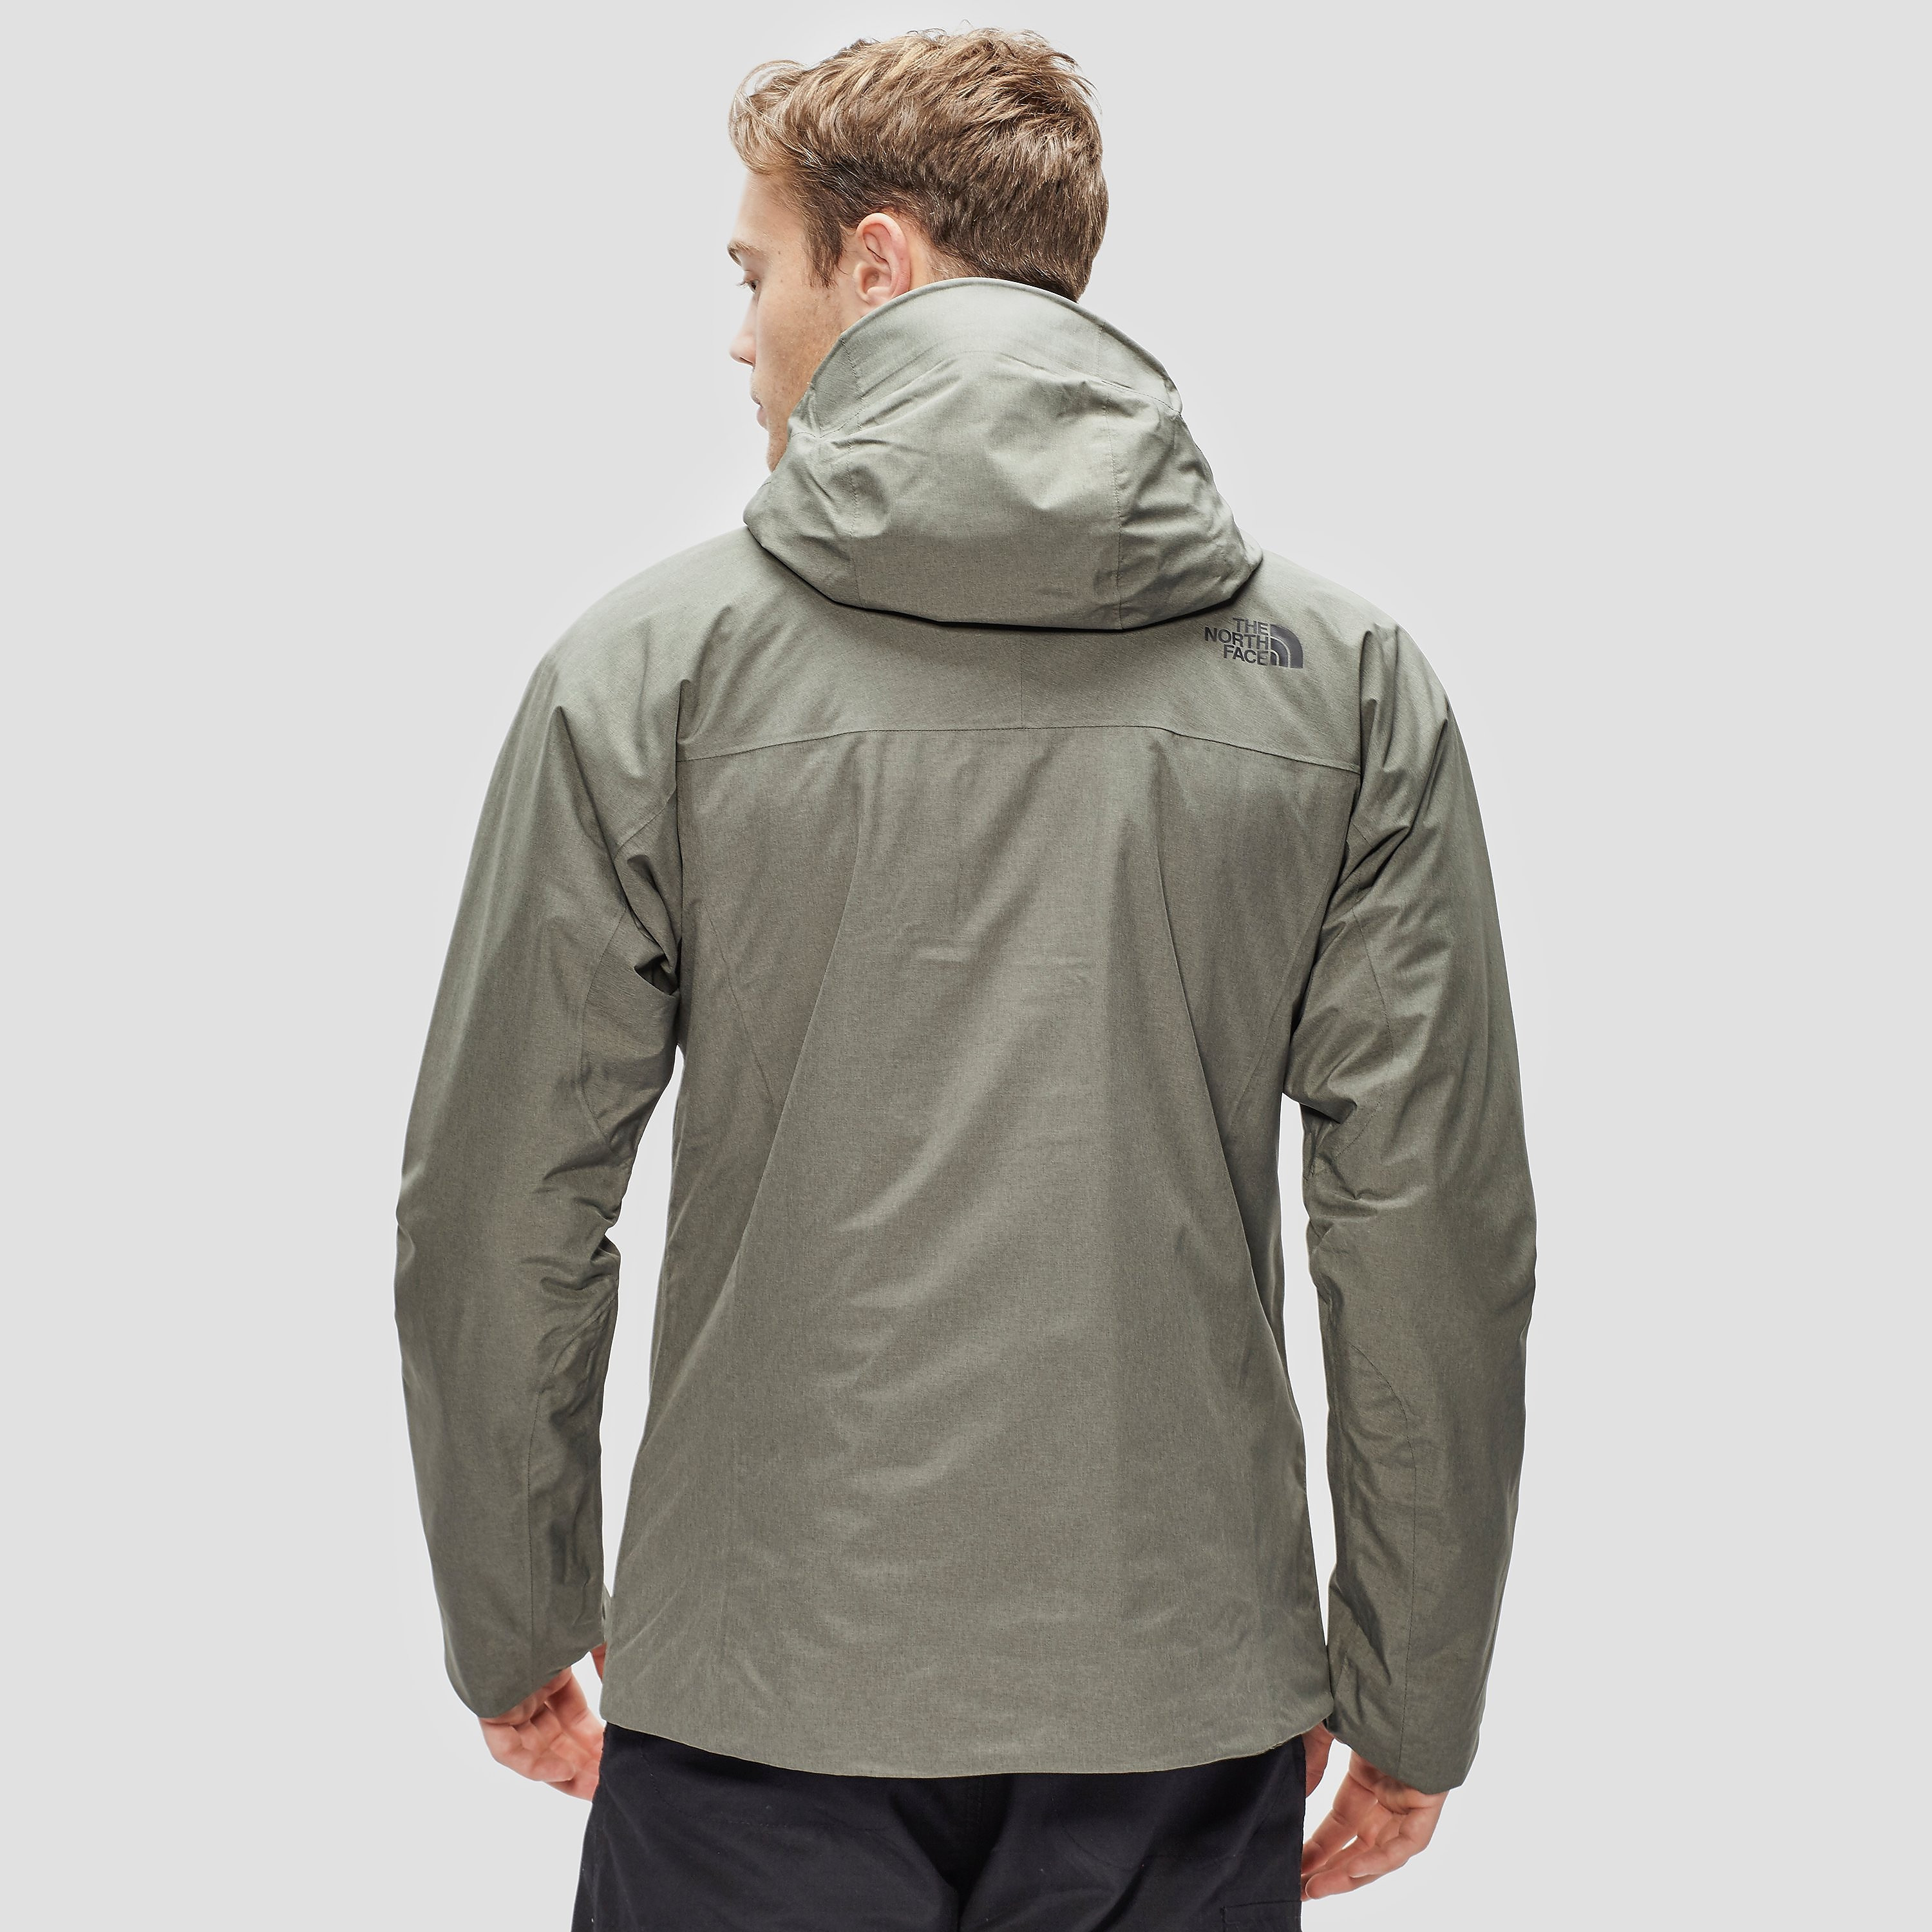 The north face Torendo Urban Jacket